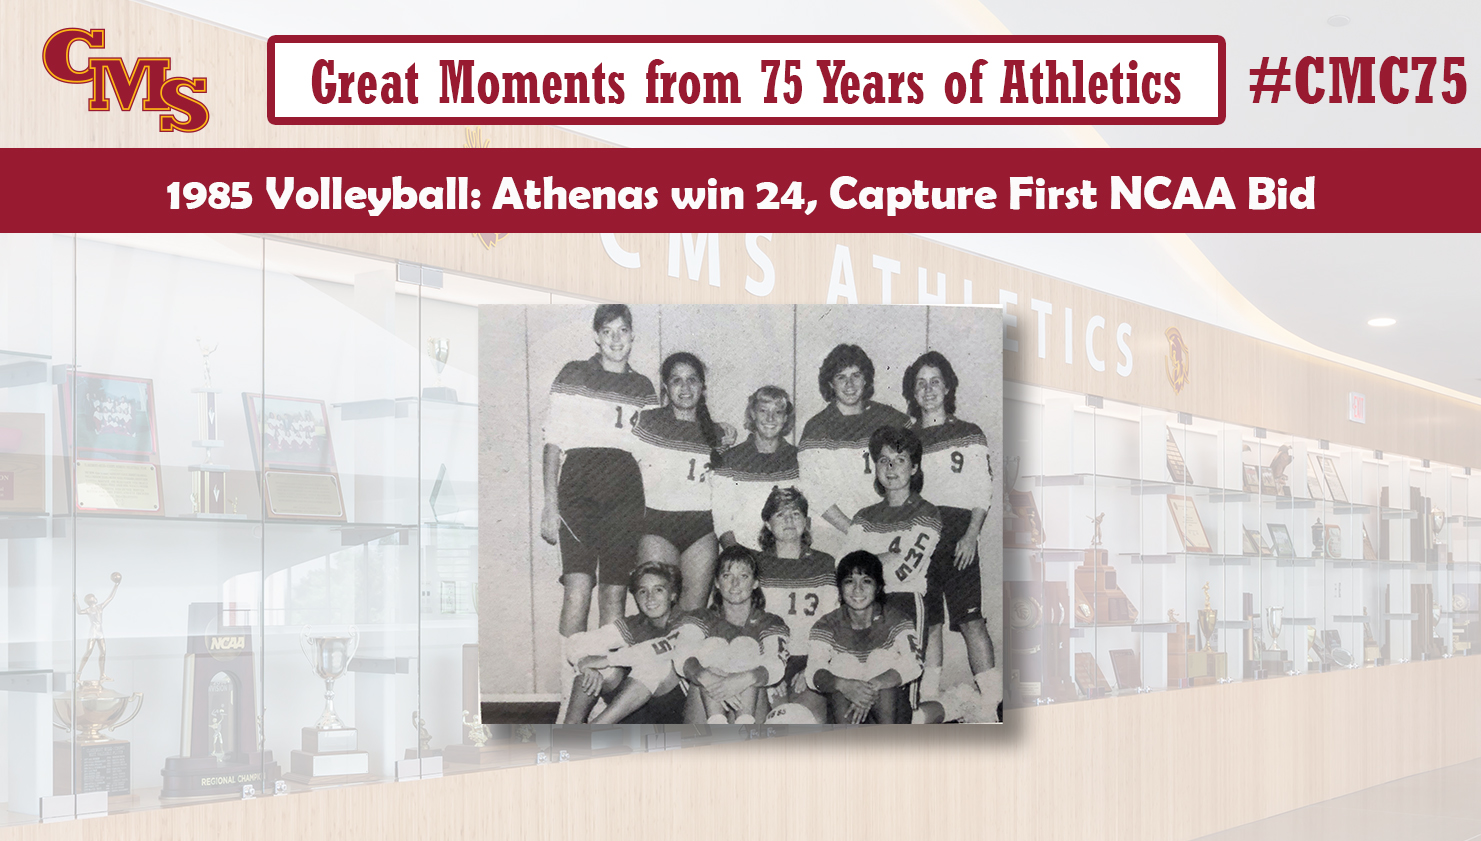 A team photo of the 1985 CMS volleyball team. Words over the photo read: Great Moments from 75 Years of Athletics, 1985 Volleyball: Athenas win 24, Capture First NCAA Bid